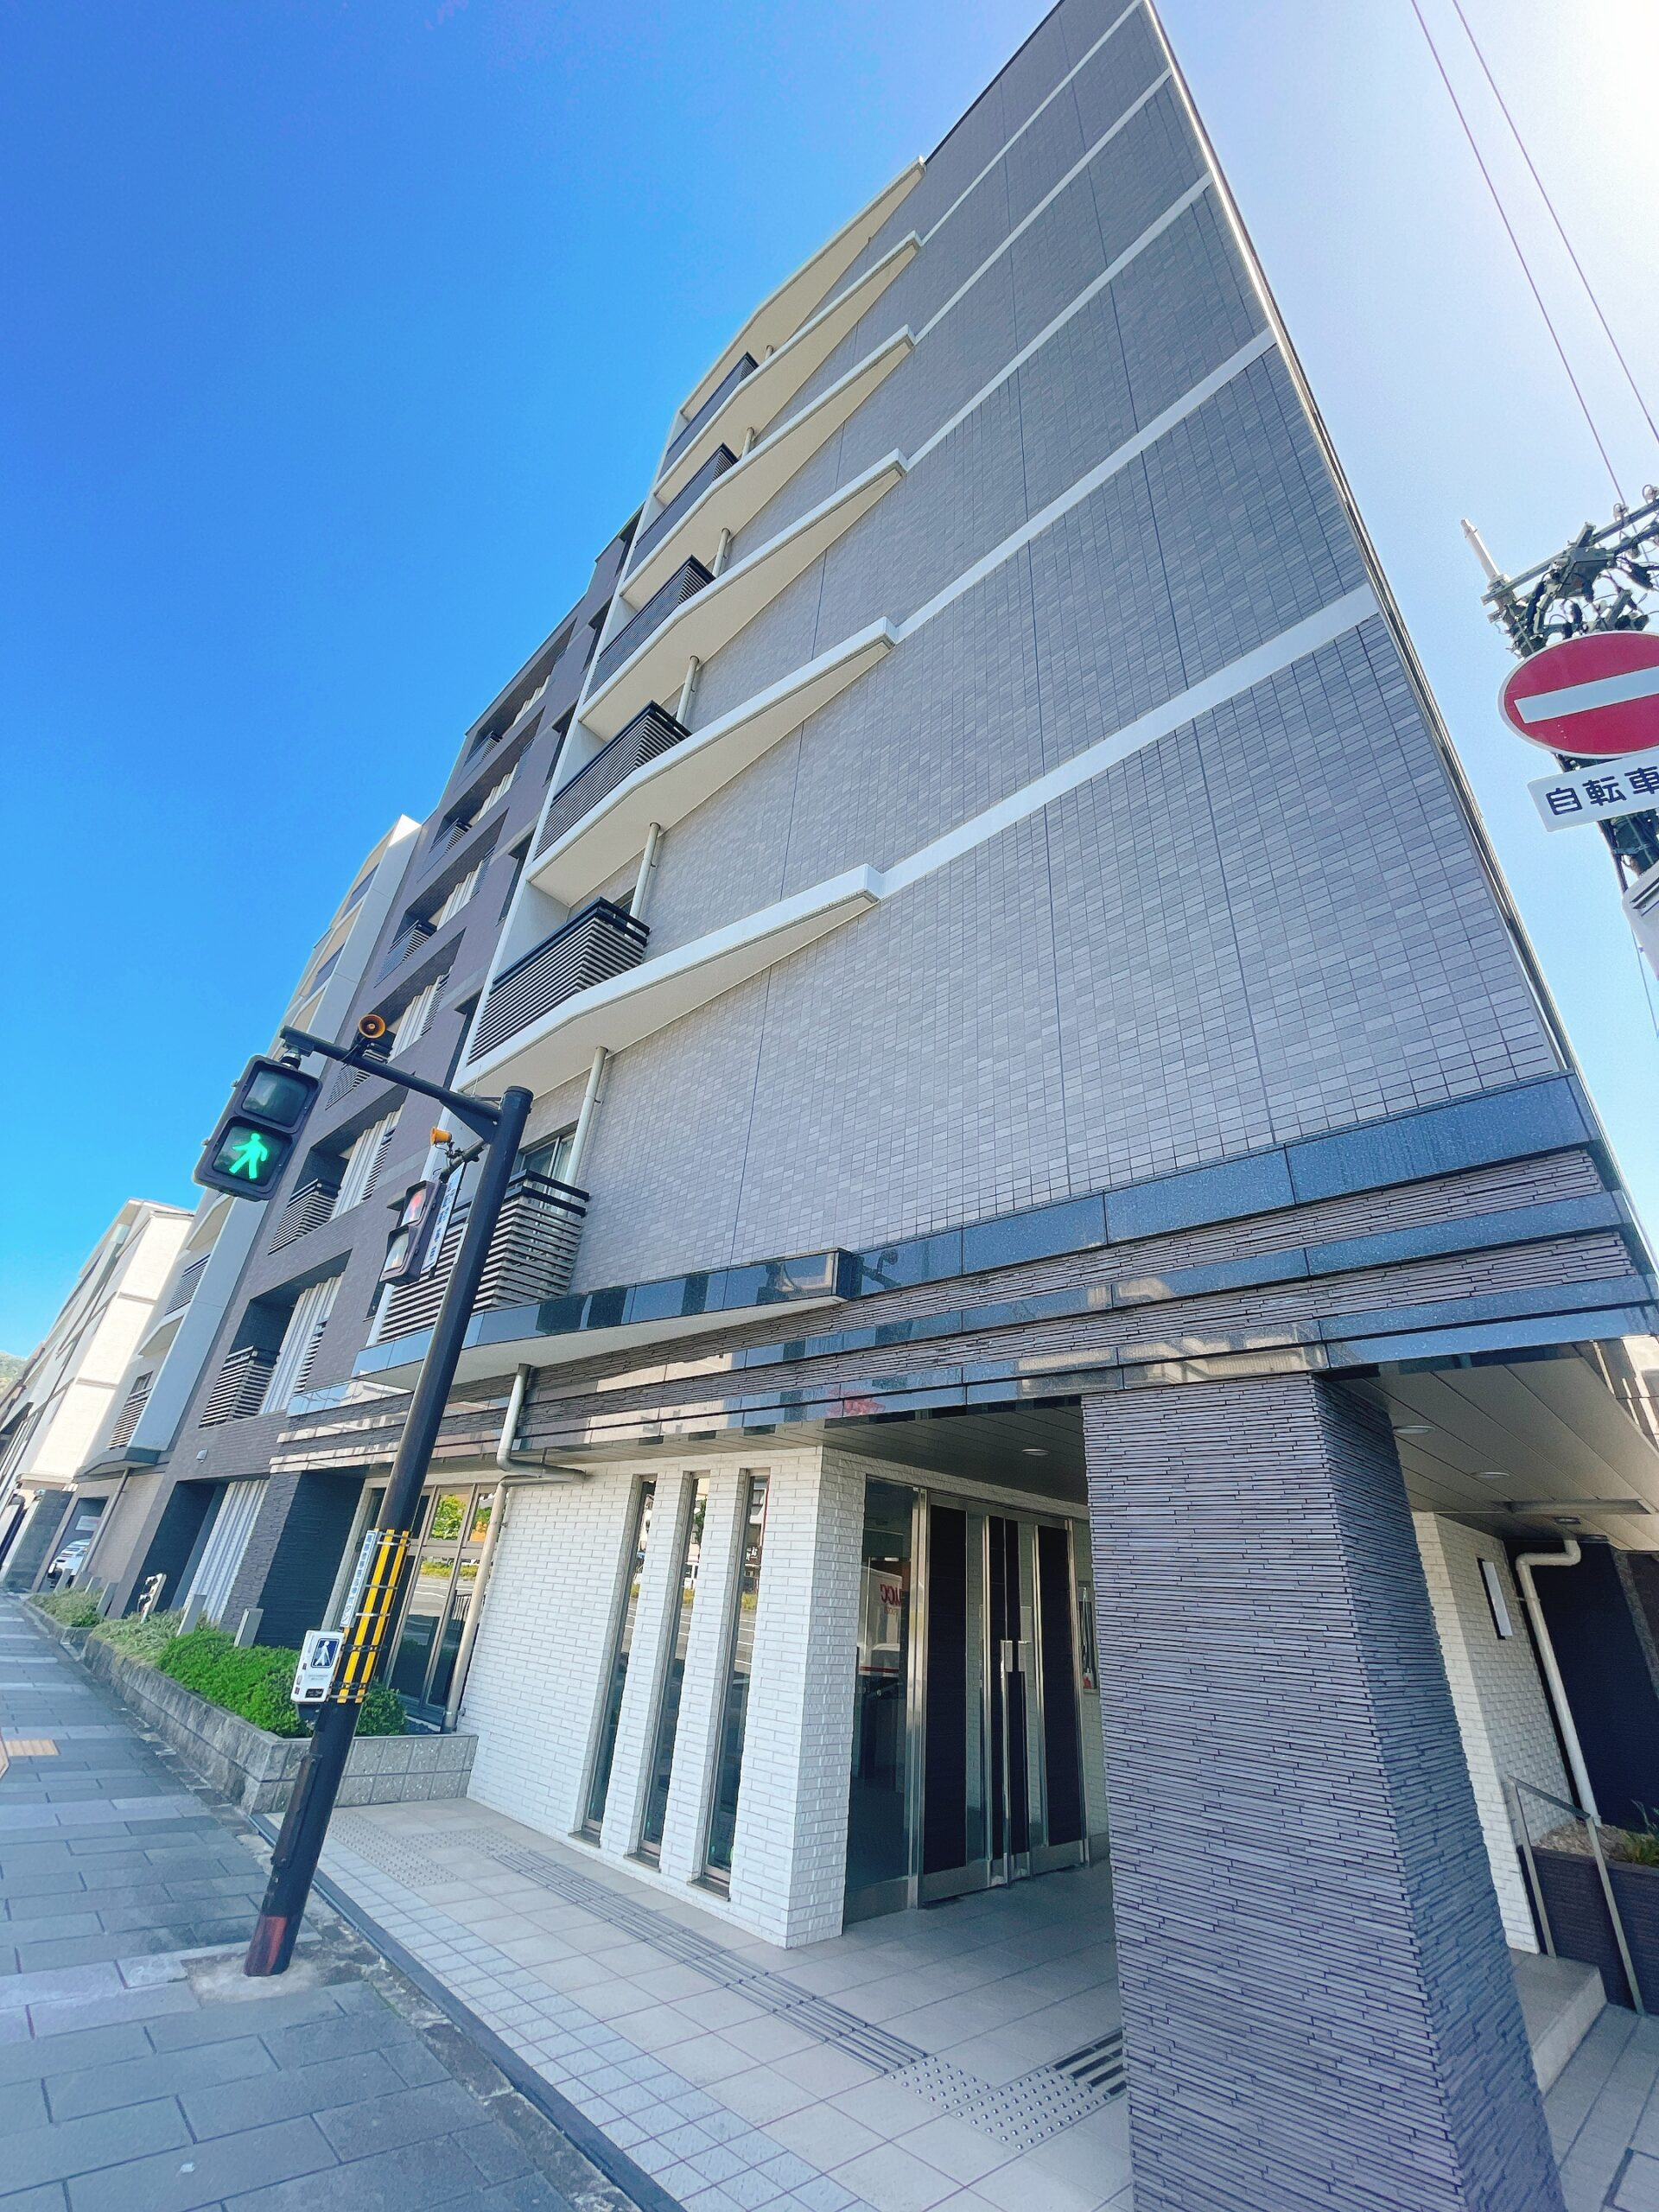 Condo Apartment on Top Floor, with a view of Kiyomizu Temple, for Sale in Higashiyama Ward, Kyoto